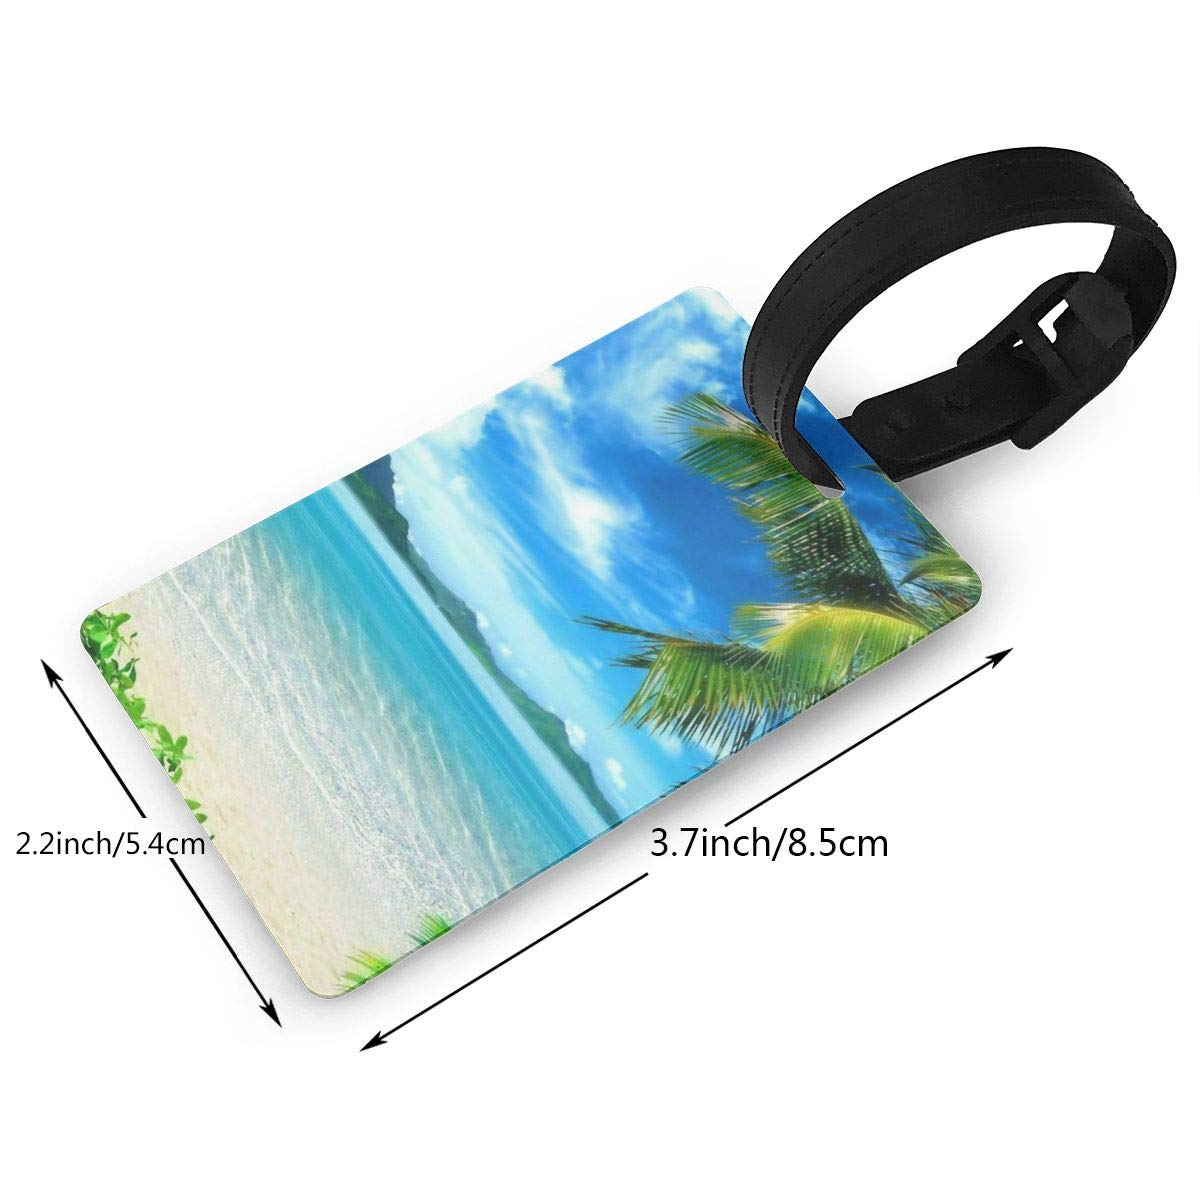 Beaches Travel Tags For Travel Bag Suitcase Accessories 2 Pack Luggage Tags